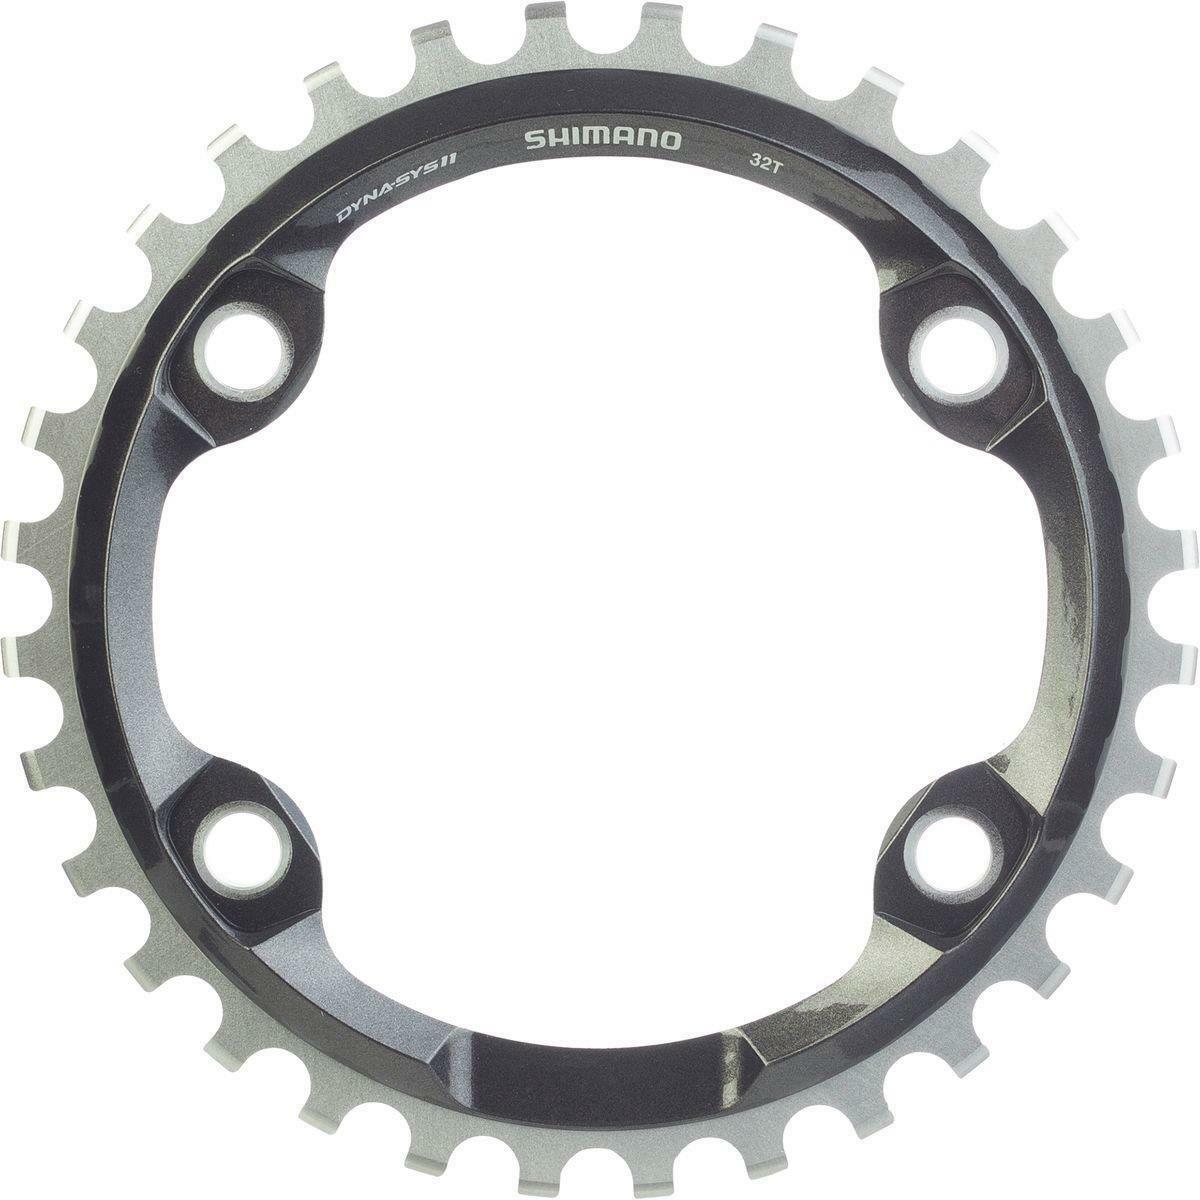 Shimano Deore XT FC-M8000-1 30T SM-CRM81 MTB  Chainring 11Spd 96pcd ISMCRM81A0  free shipping & exchanges.